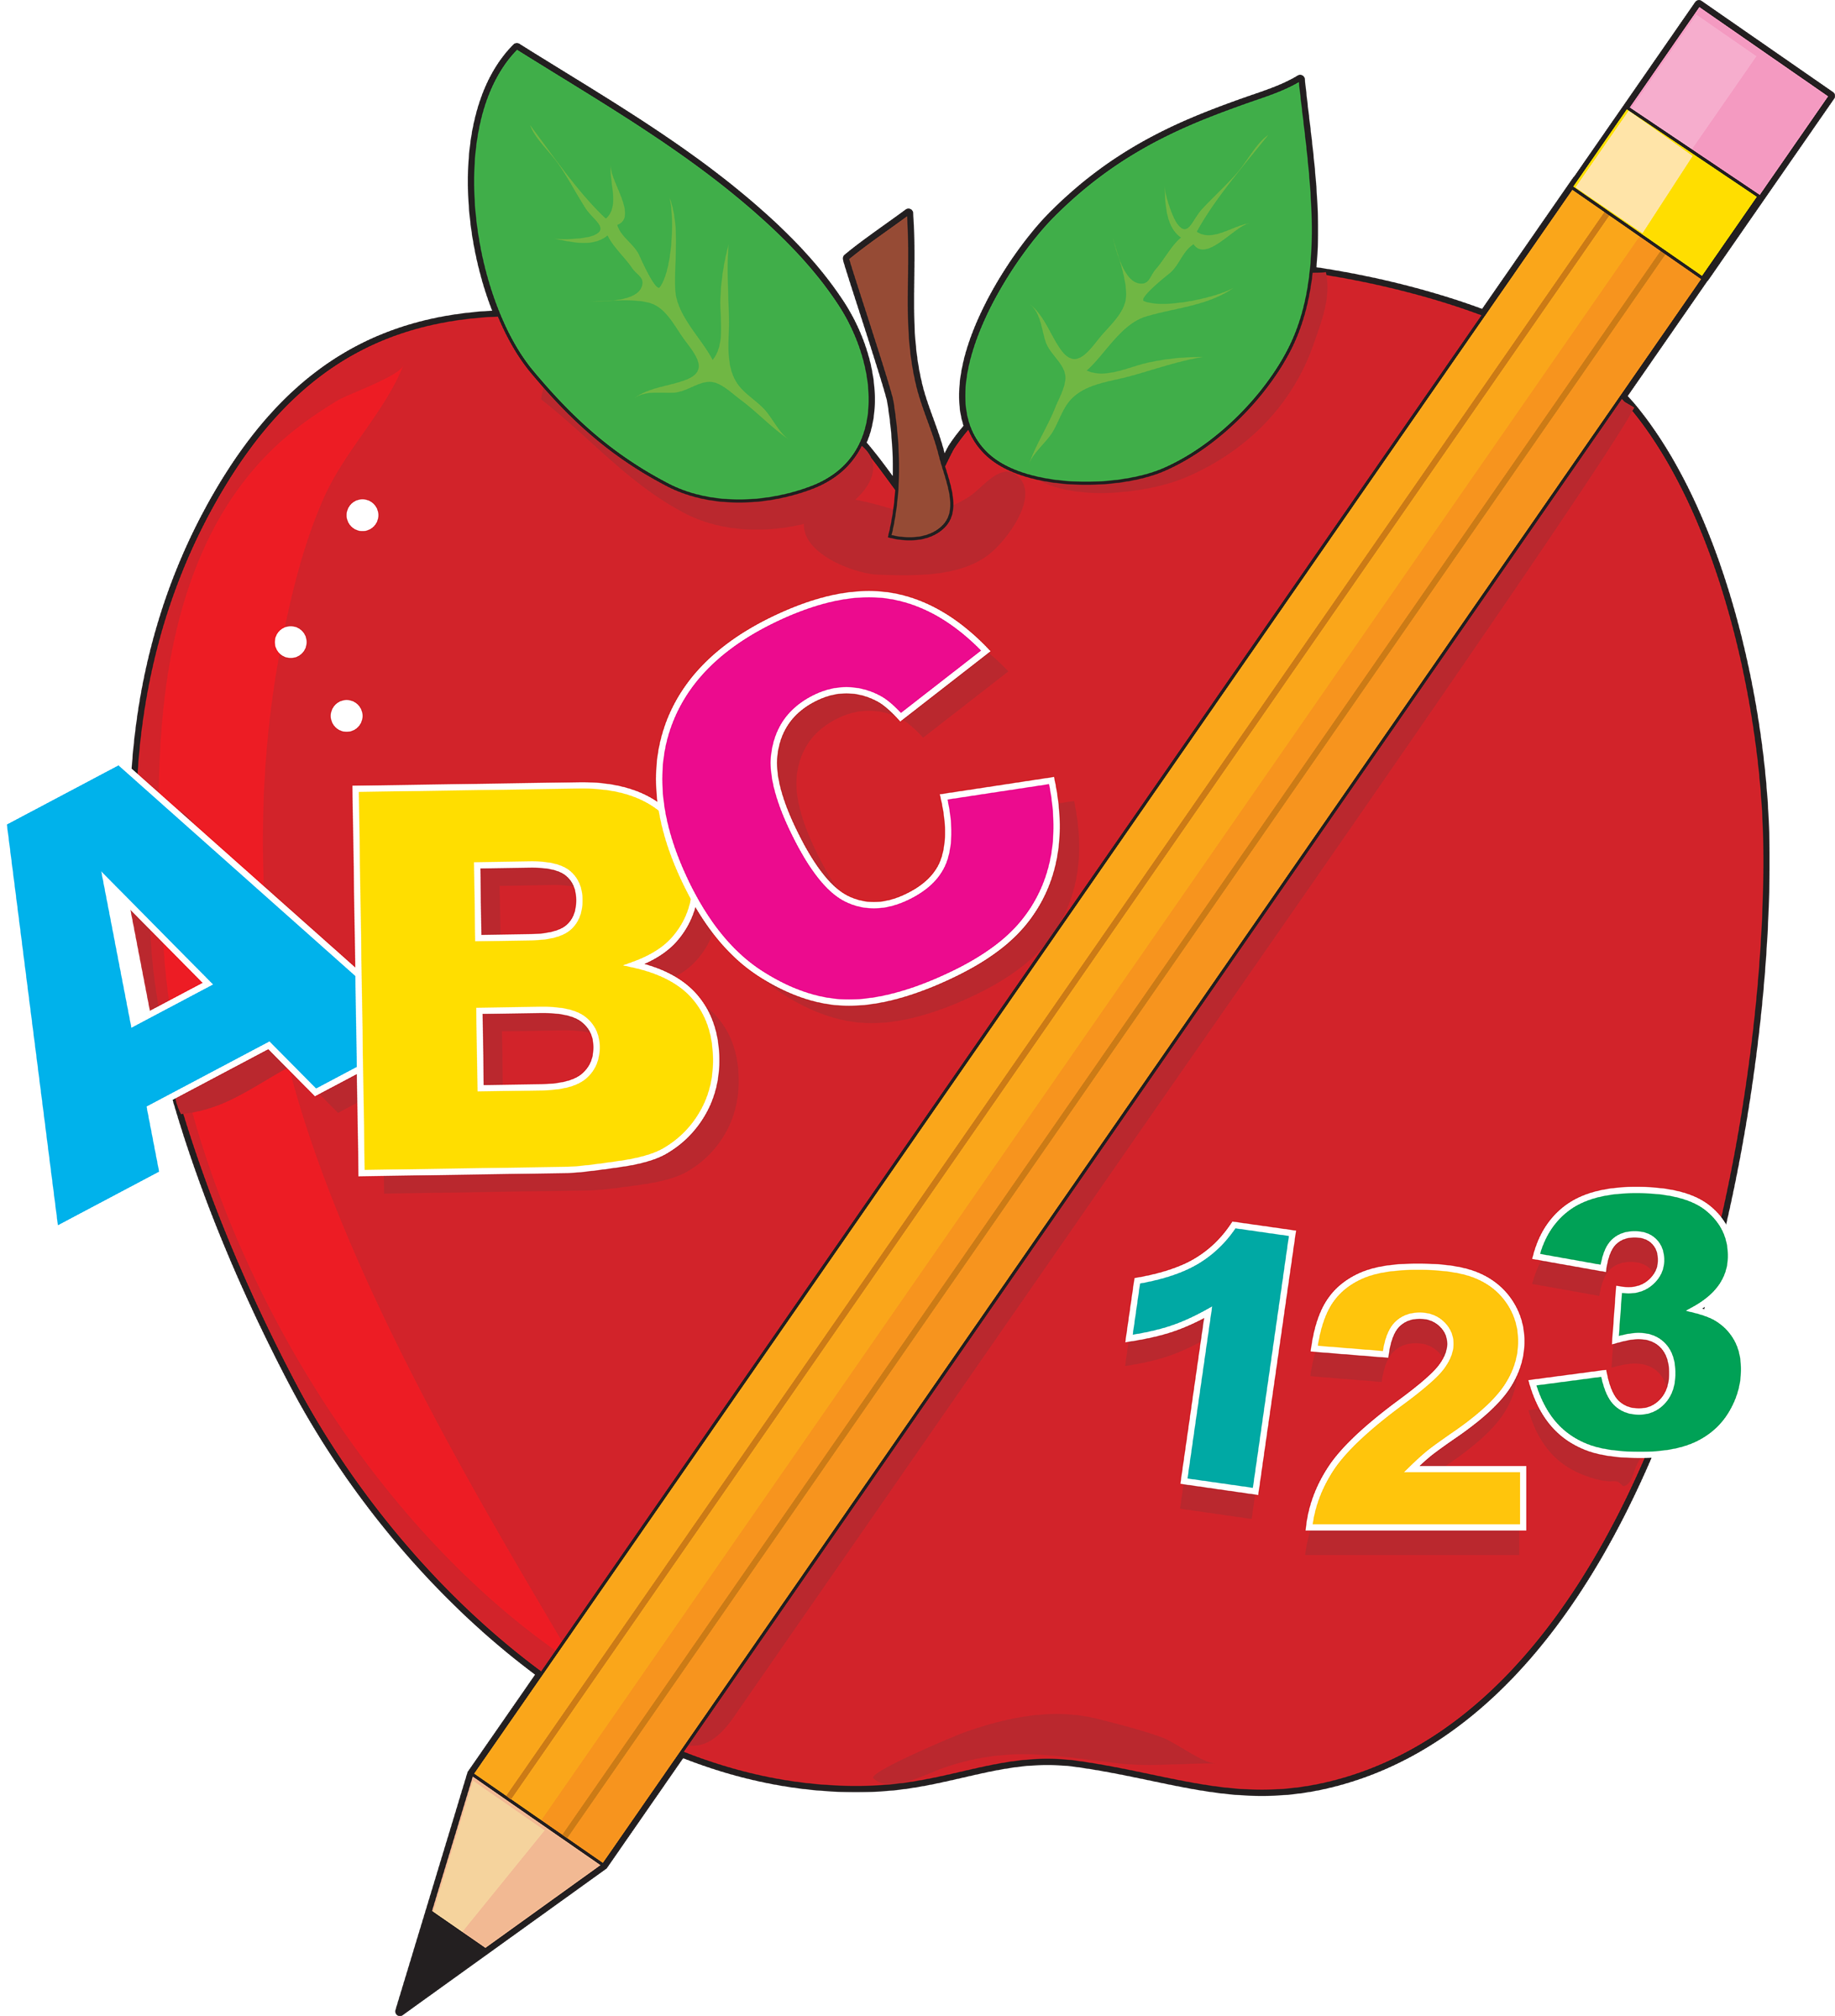 Spf lesson assignment text. Student clipart pre k